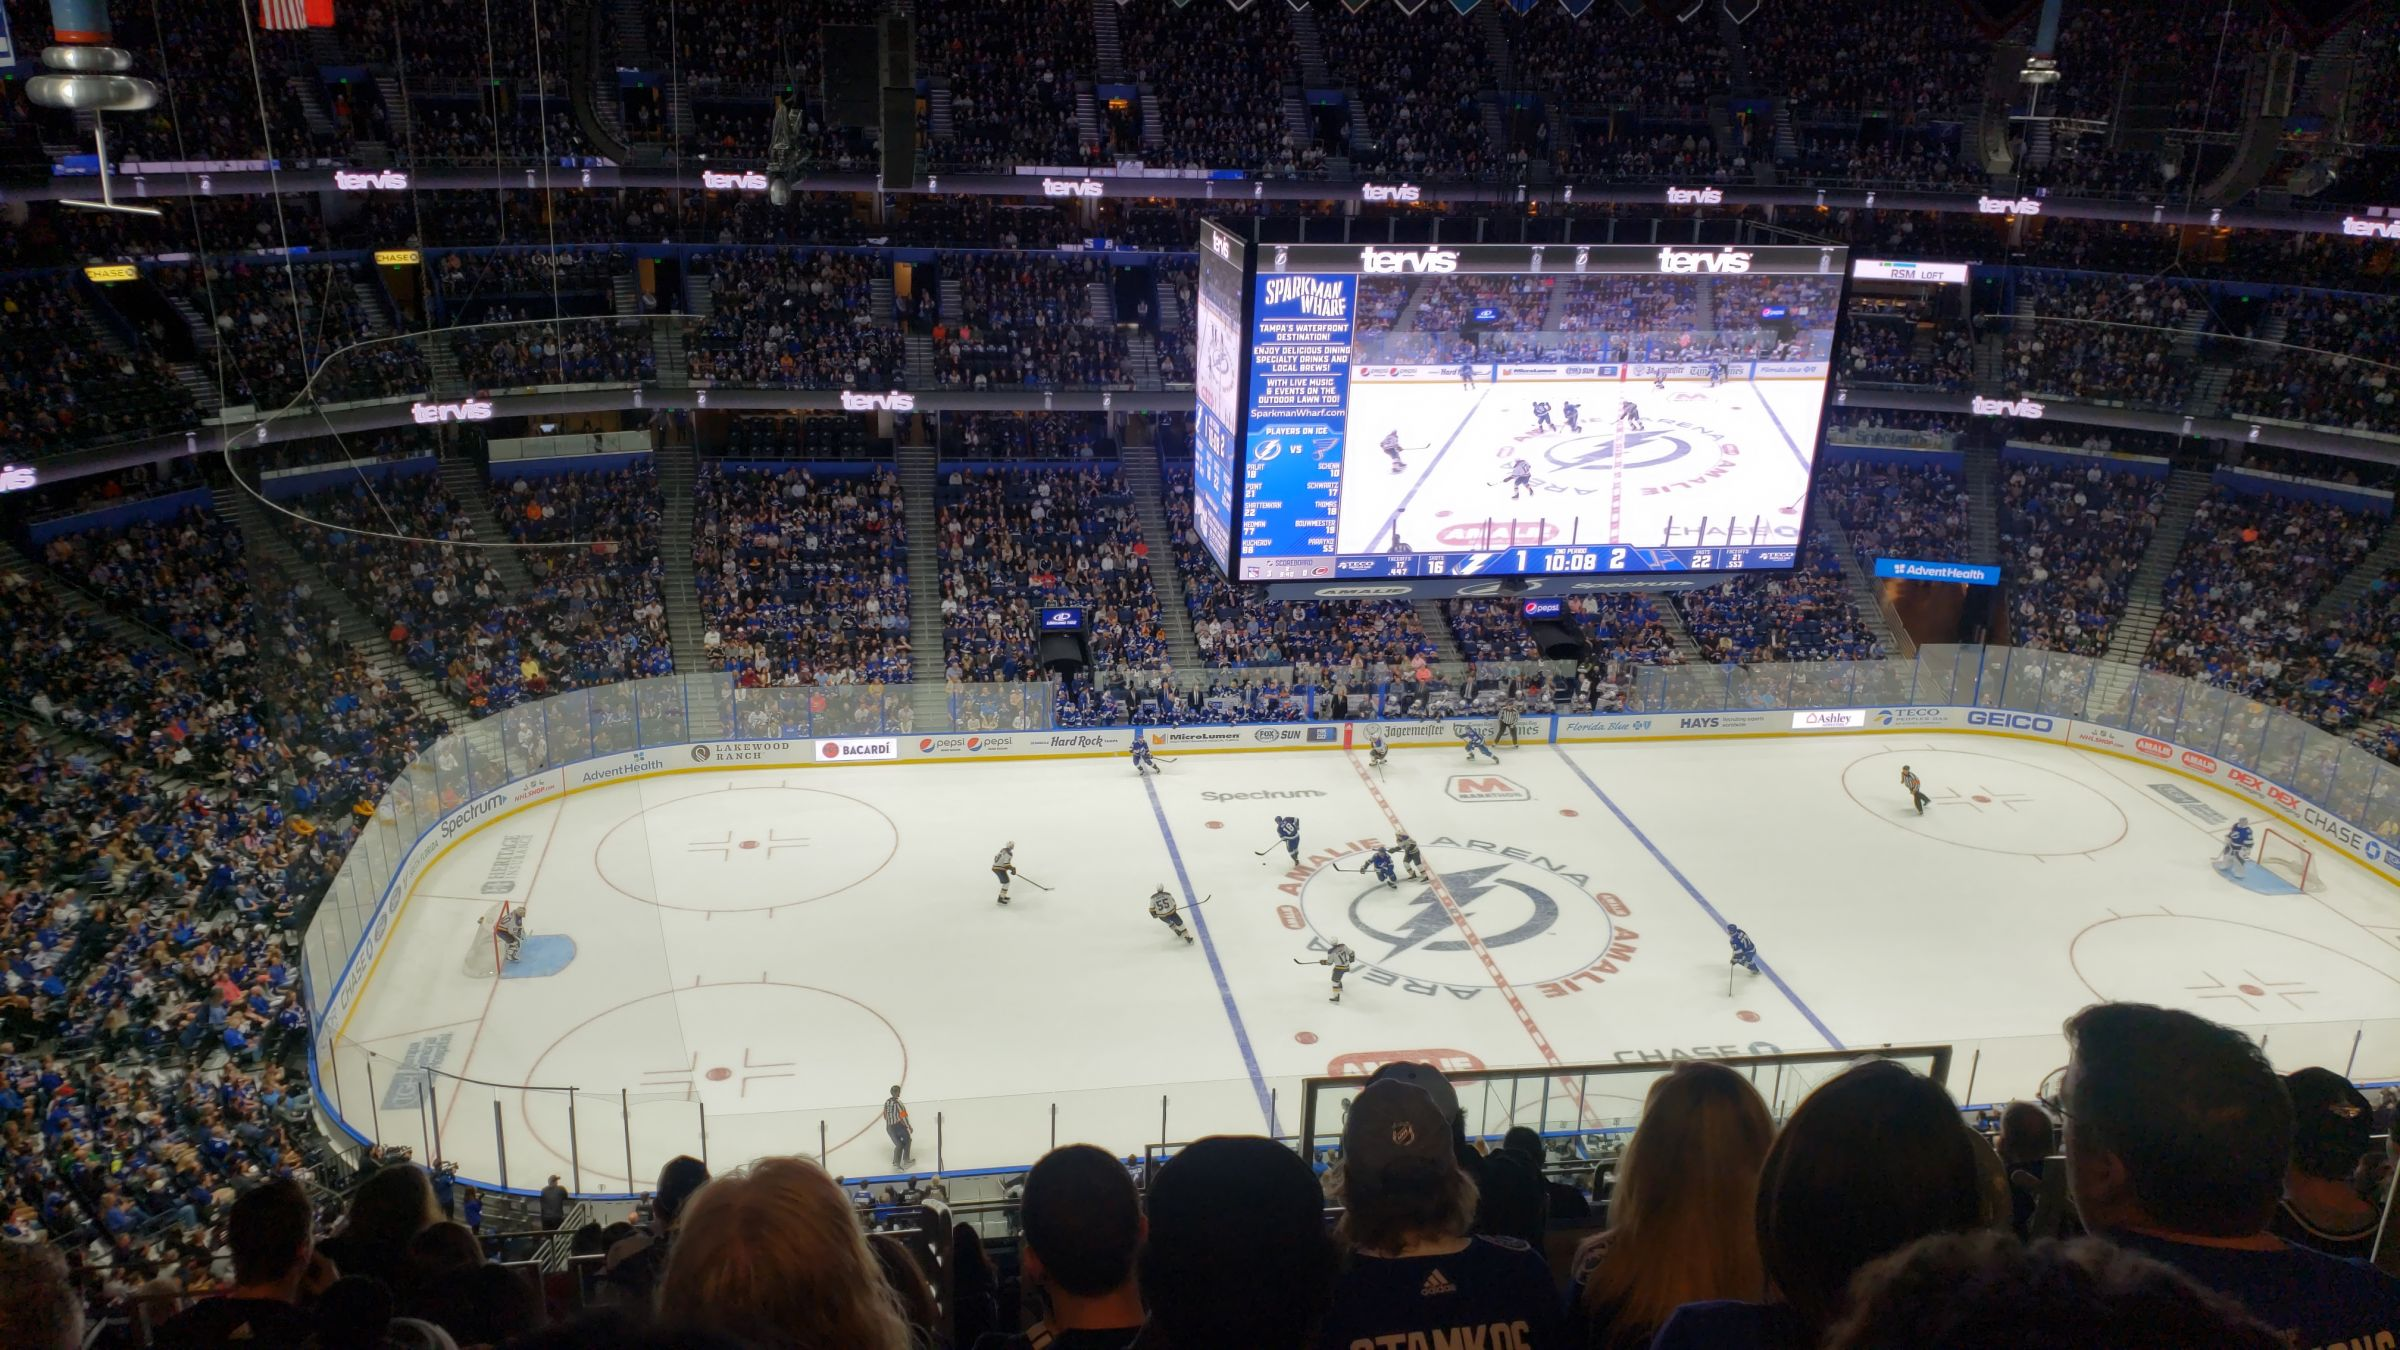 Section 318 seat view